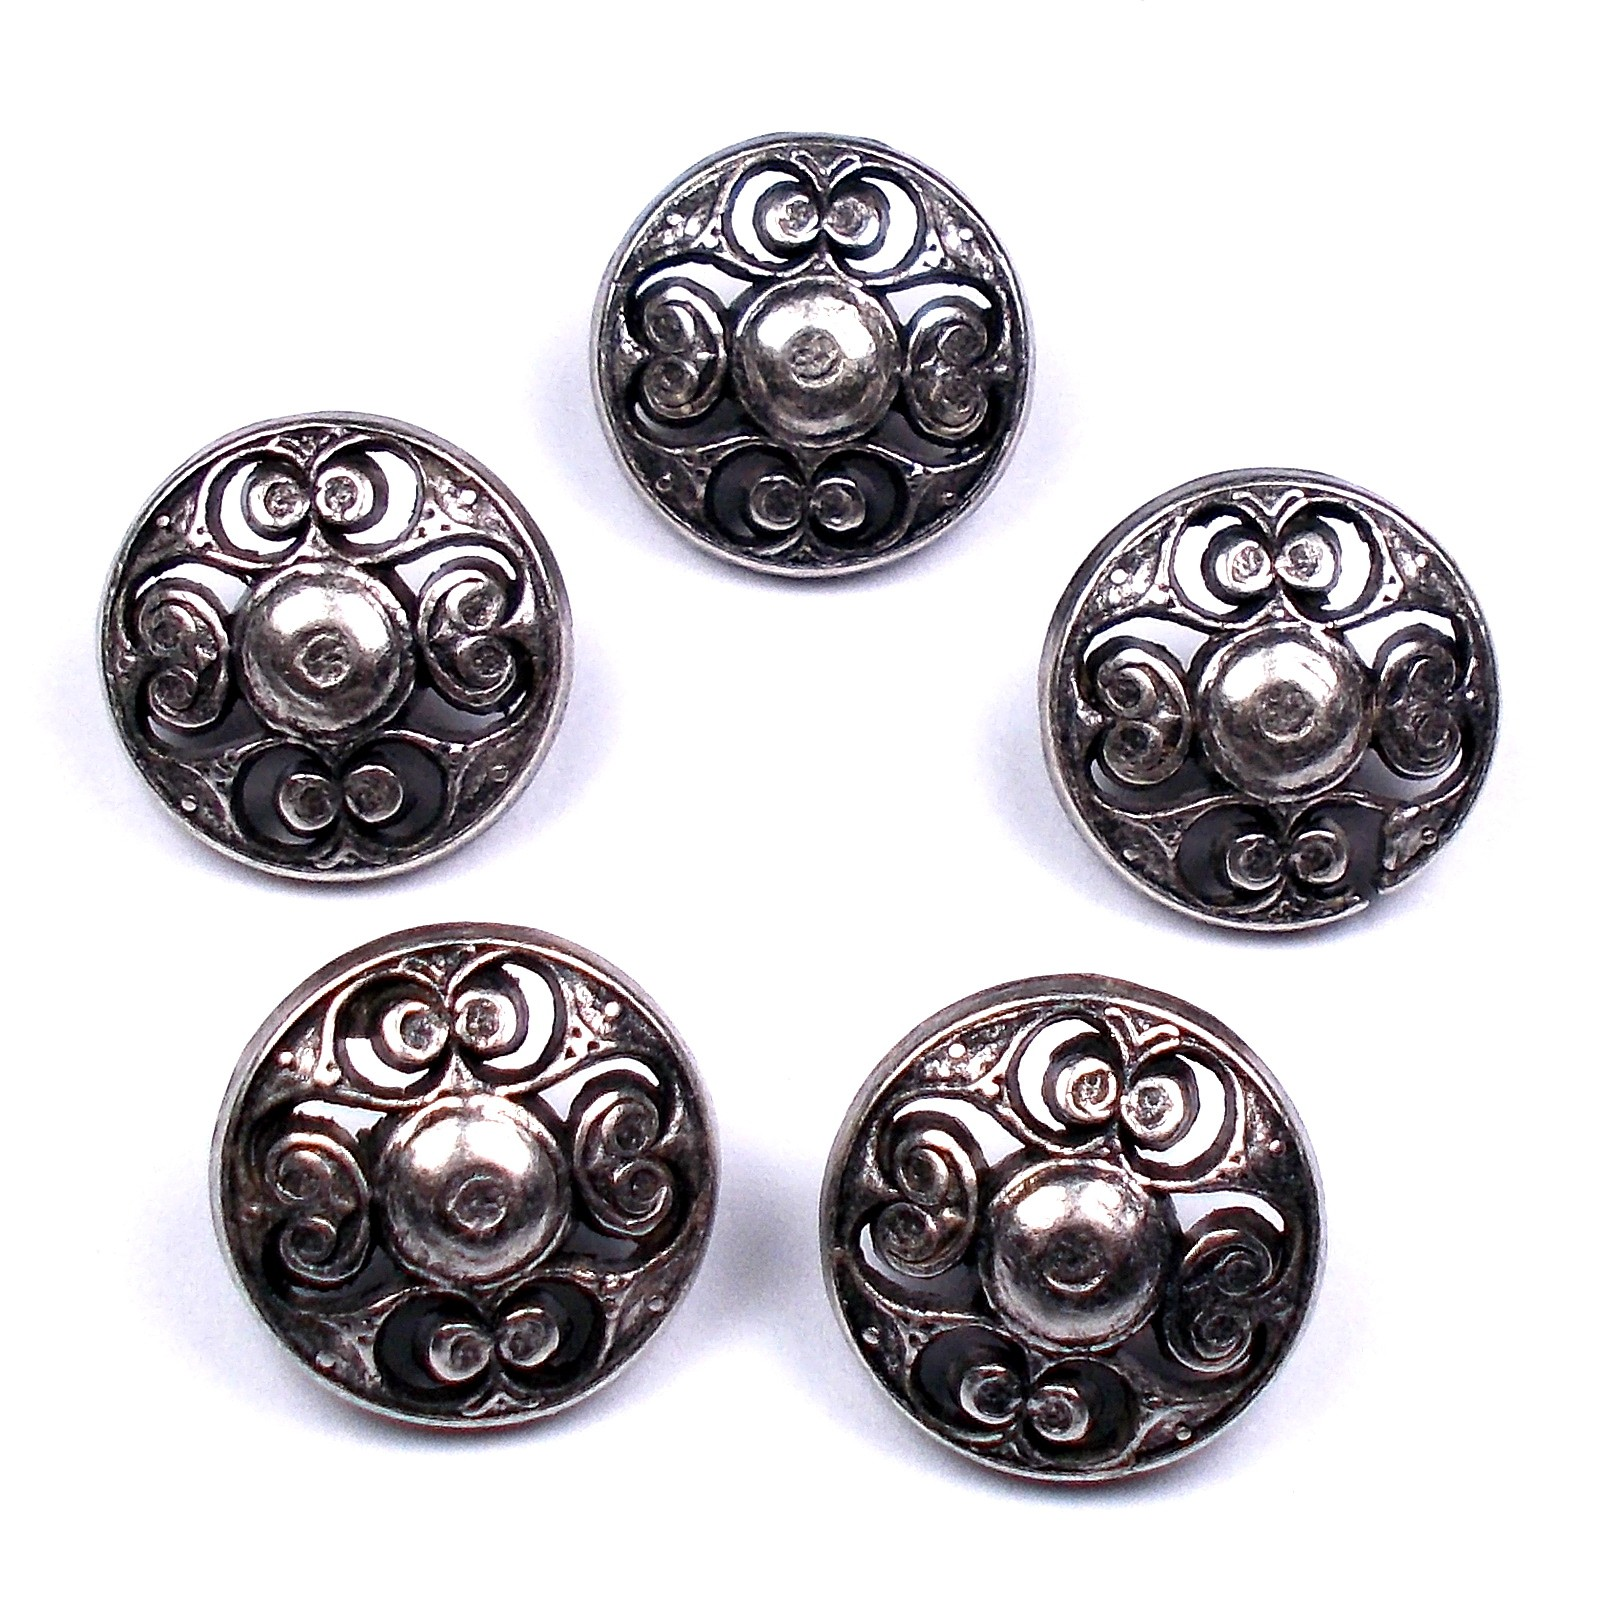 Vintage Style Metal Filigree Buttons 19mm Silver Pack of 5